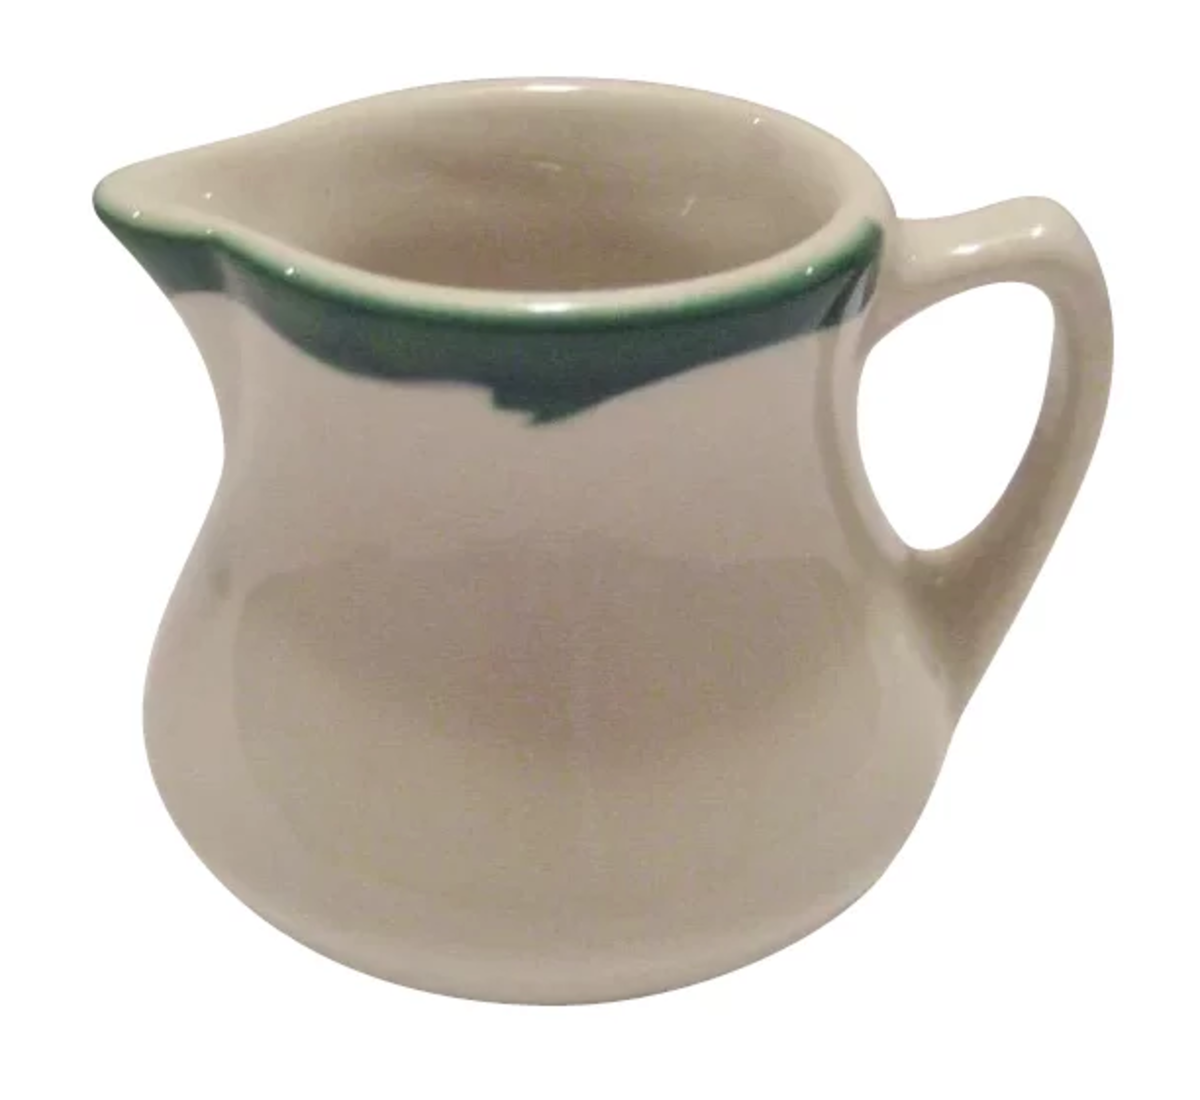 """A crest green restaurant ware creamer by Buffalo China, 2-7/8"""" h and 3-1/2"""" from handle to spout; $15."""